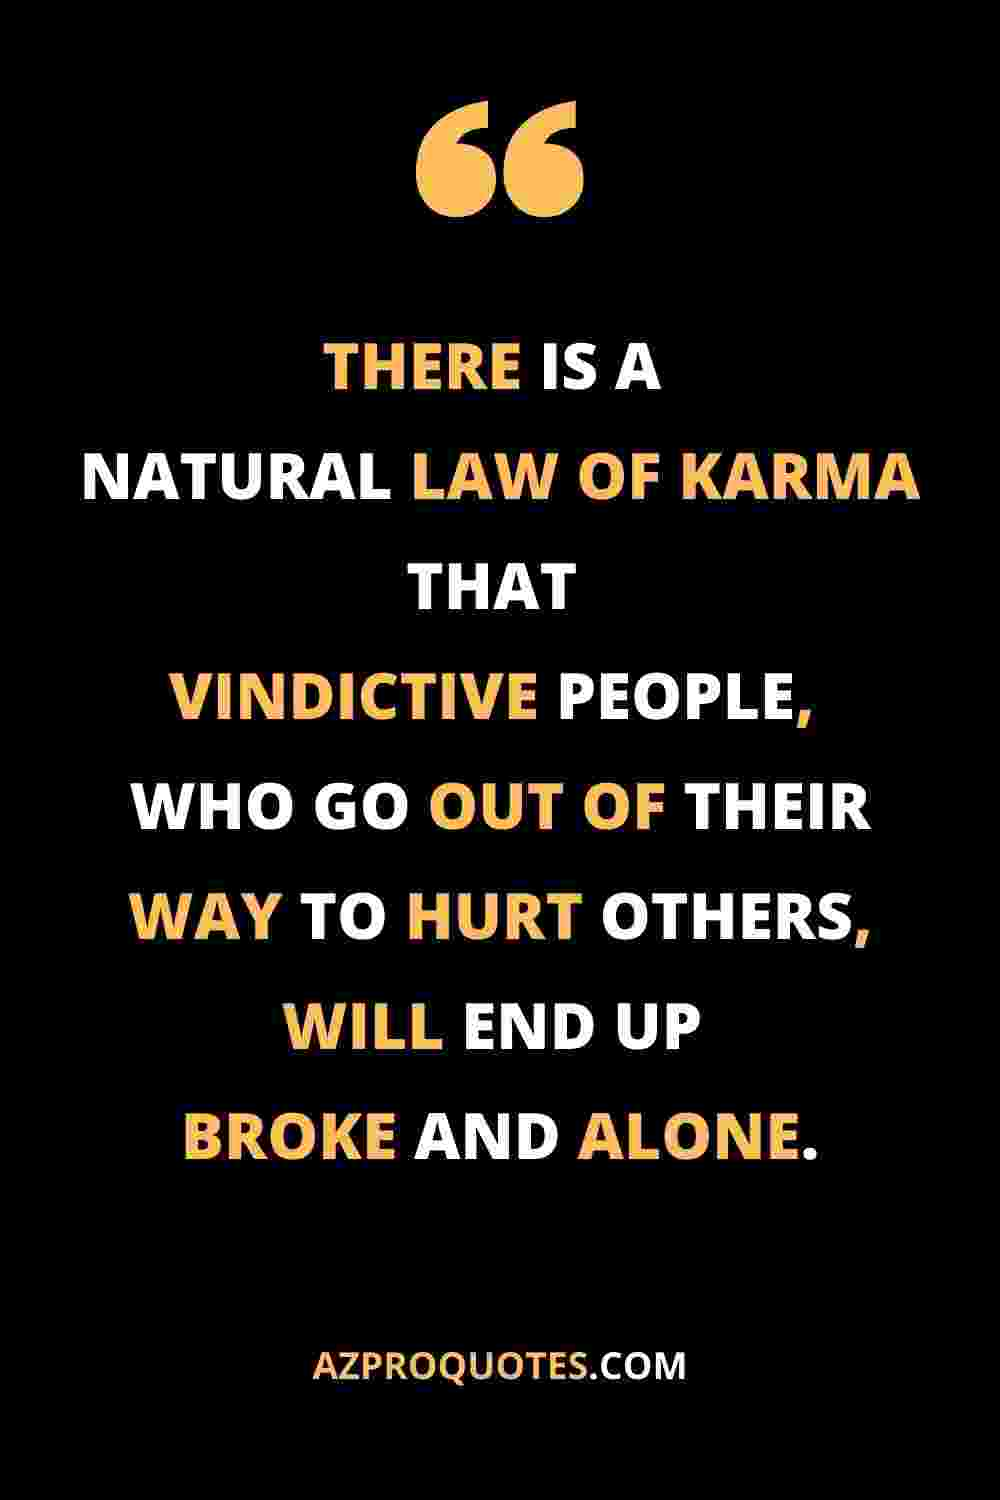 Law of karma quotes